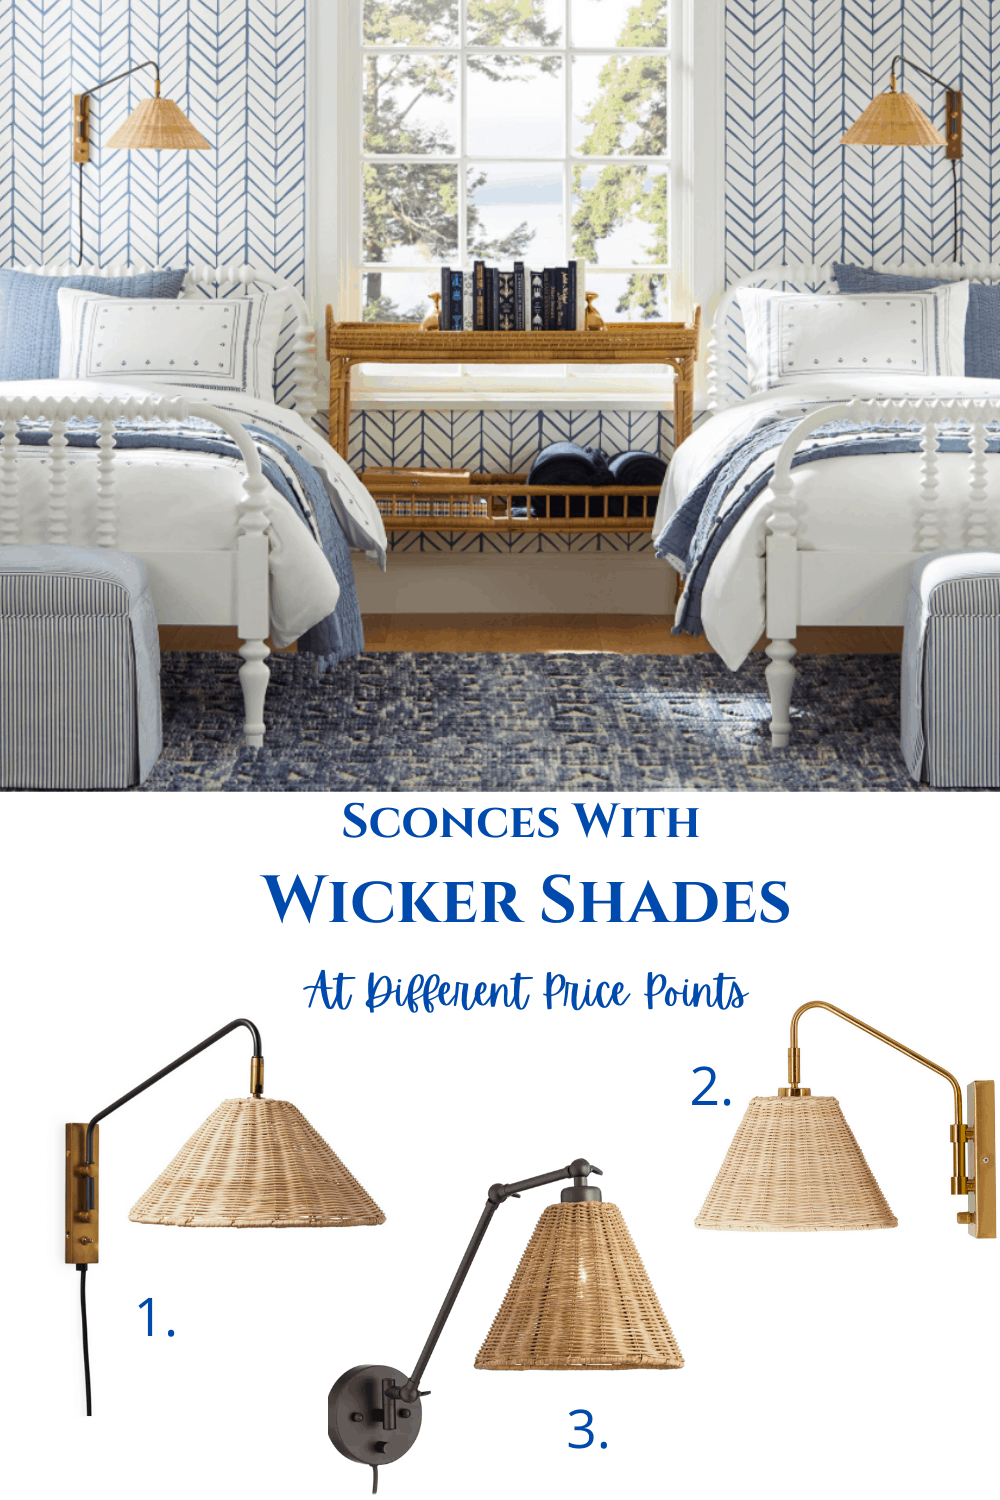 Wicker Shades at Different Price Points